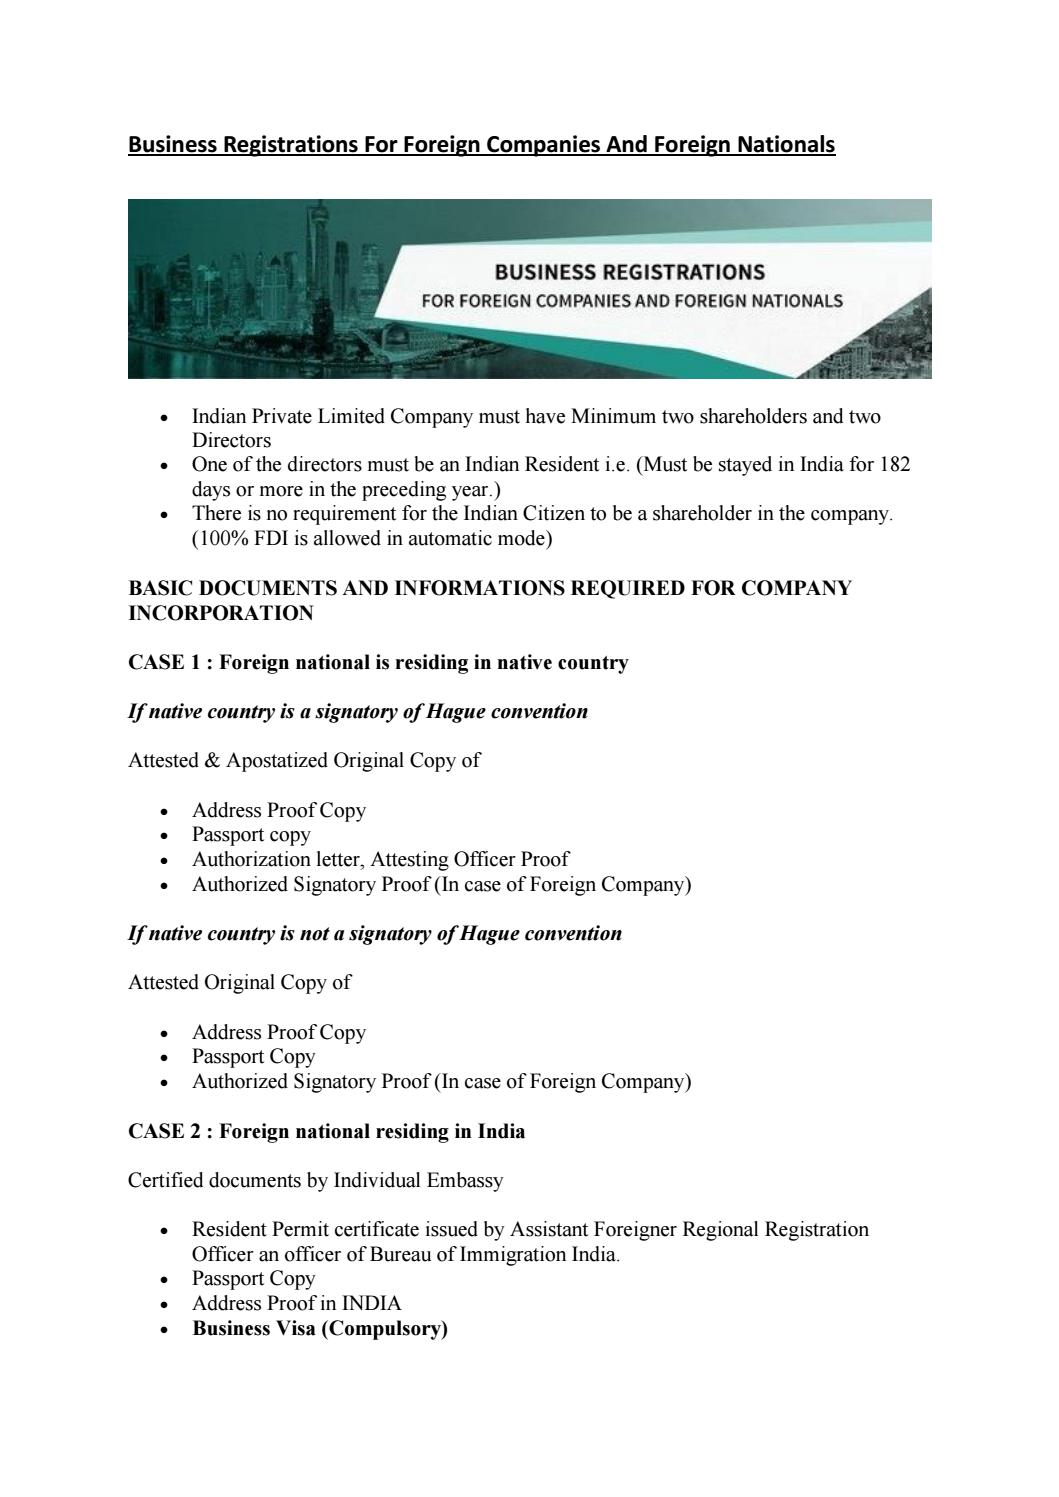 Business registrations for foreign companies and foreign